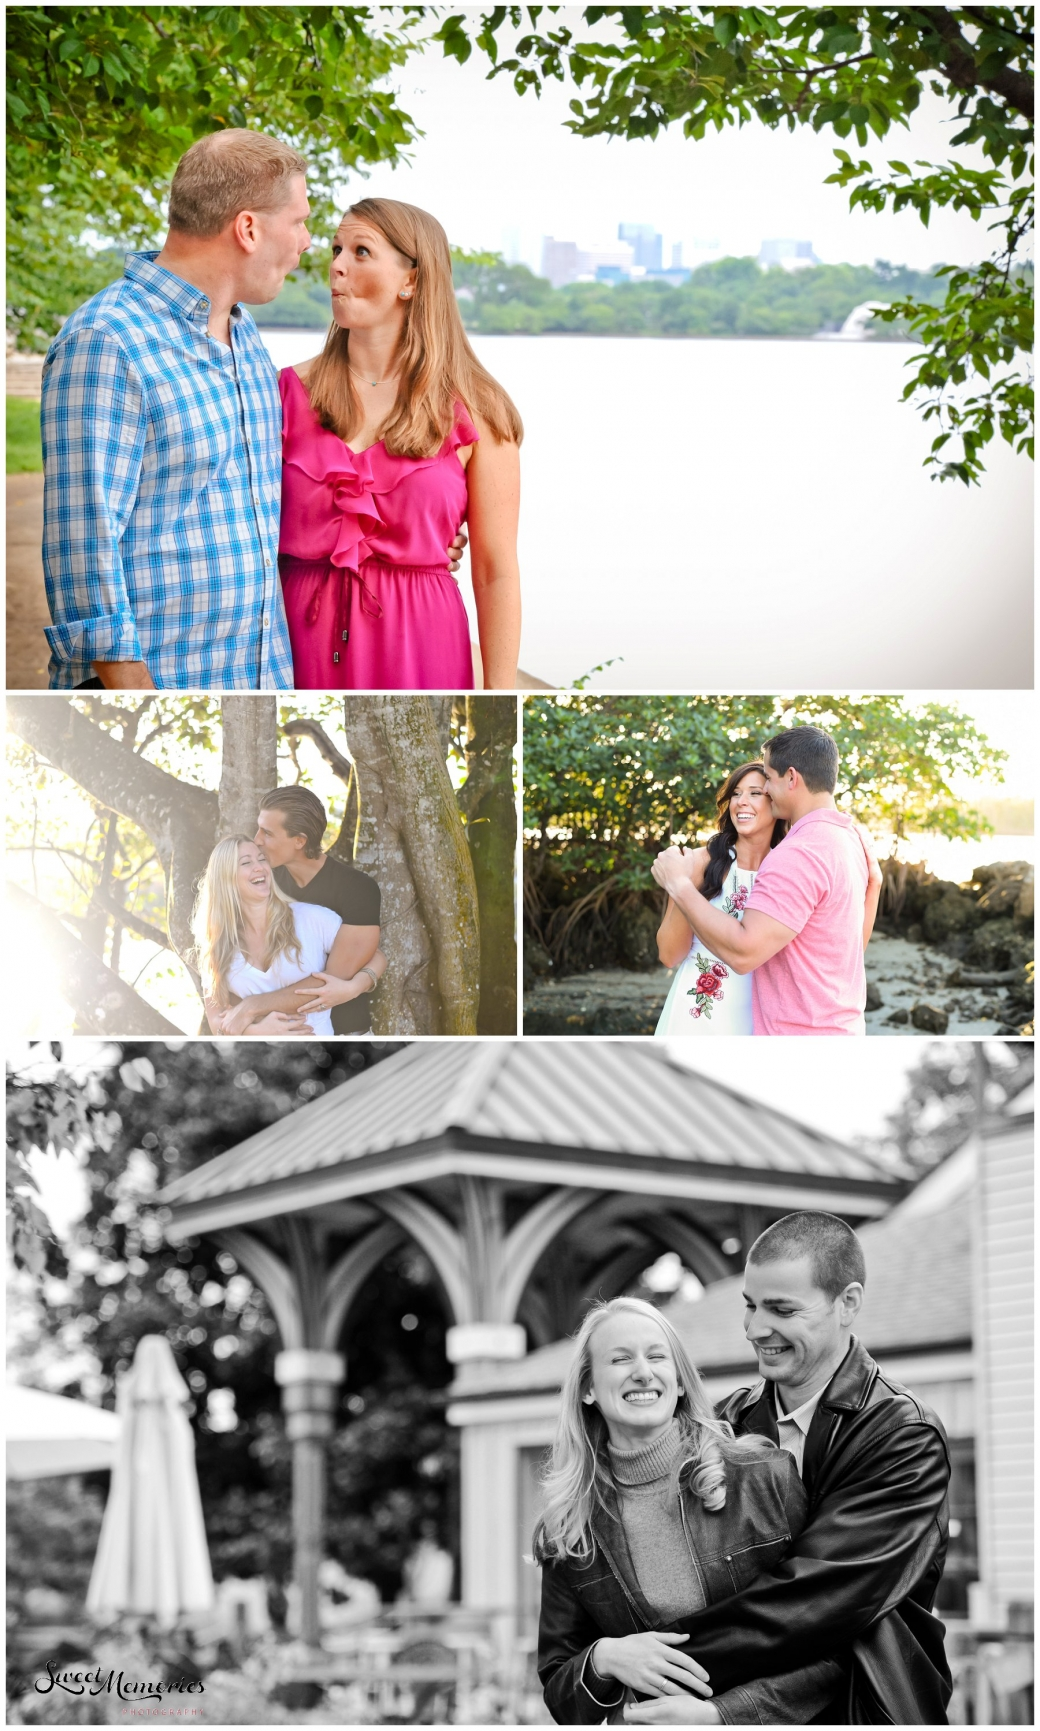 Engagement Sessions - why they are amazing and why you should do it!